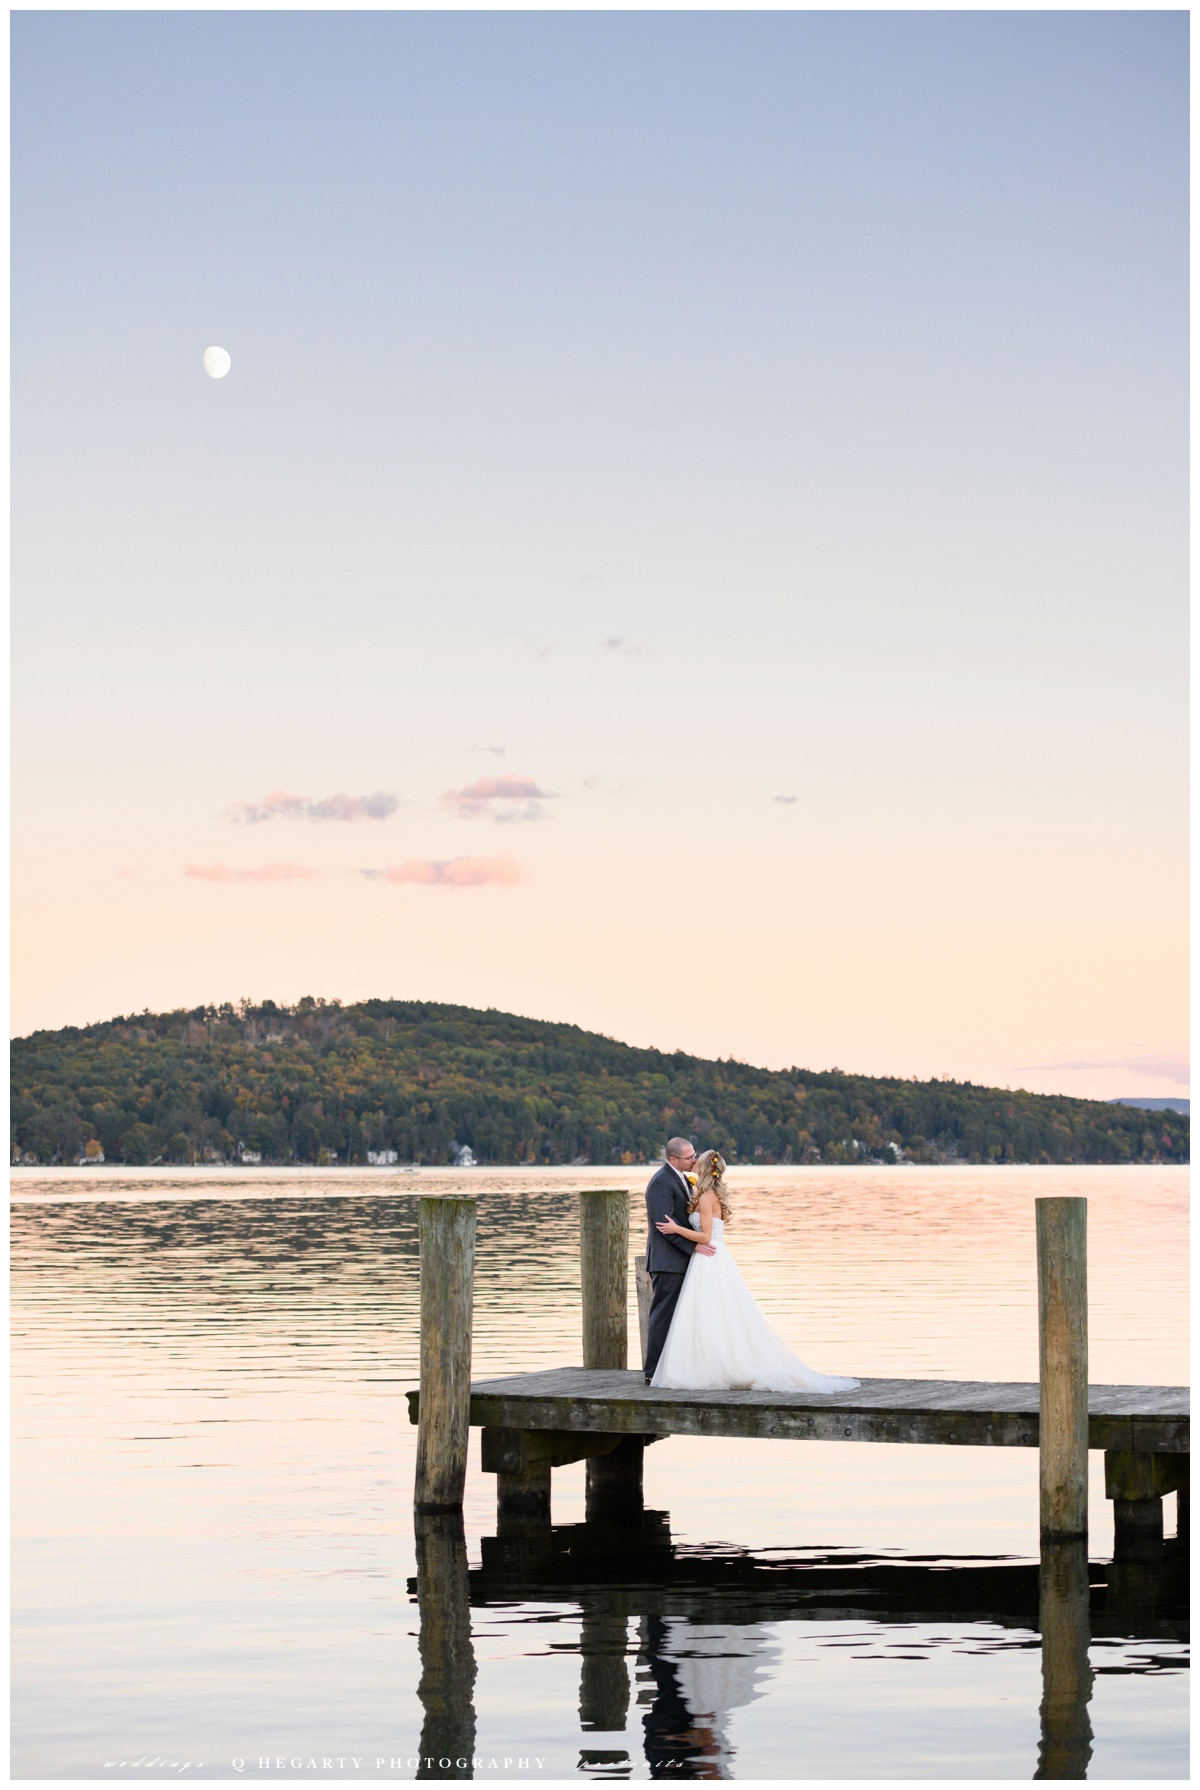 lake Winnipesaukee weddings Q Hegarty Photography